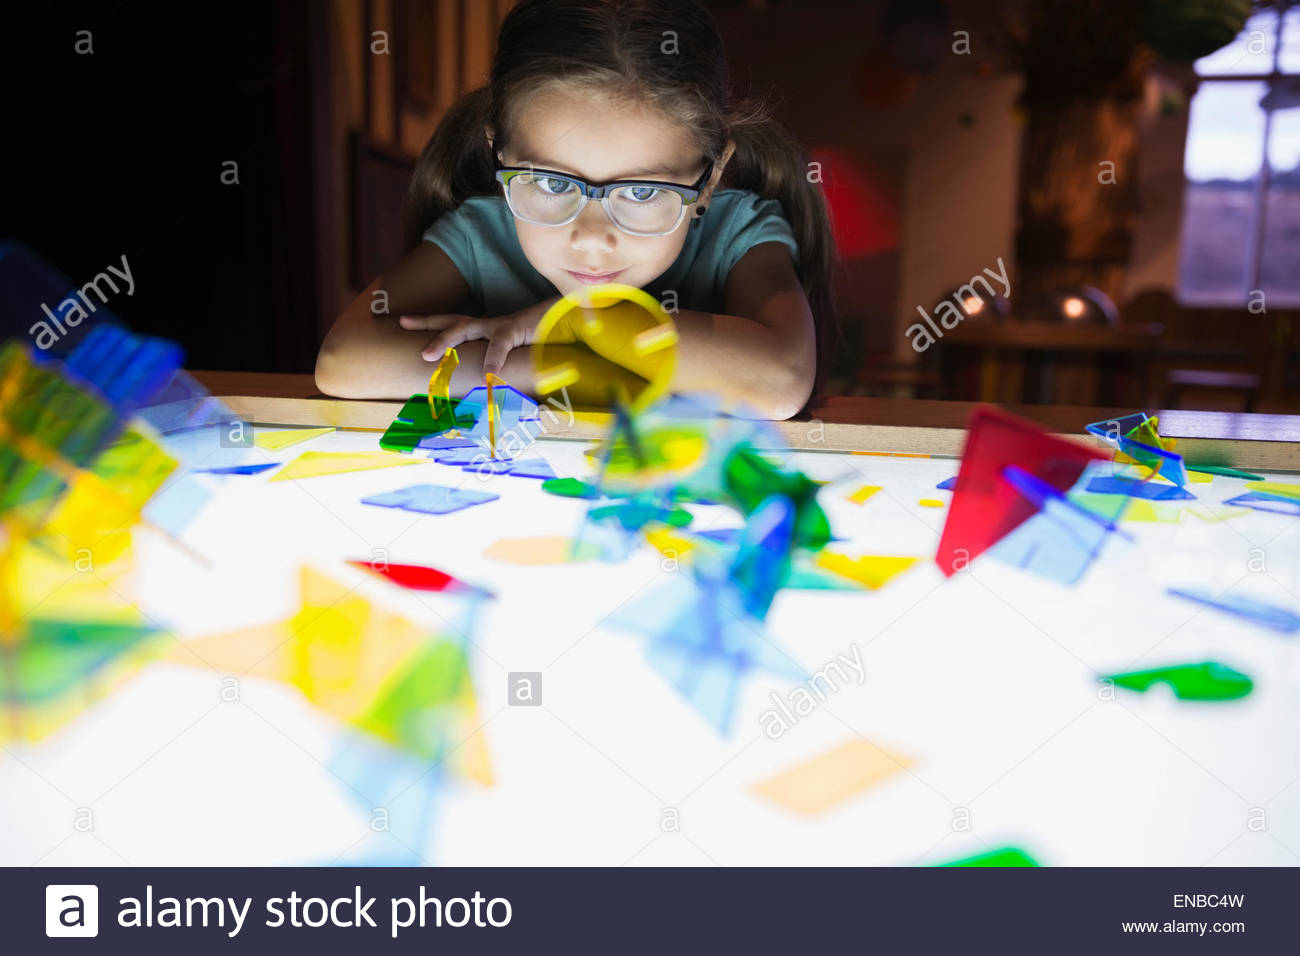 Curious girl watching geometric shapes at science center - Stock Image